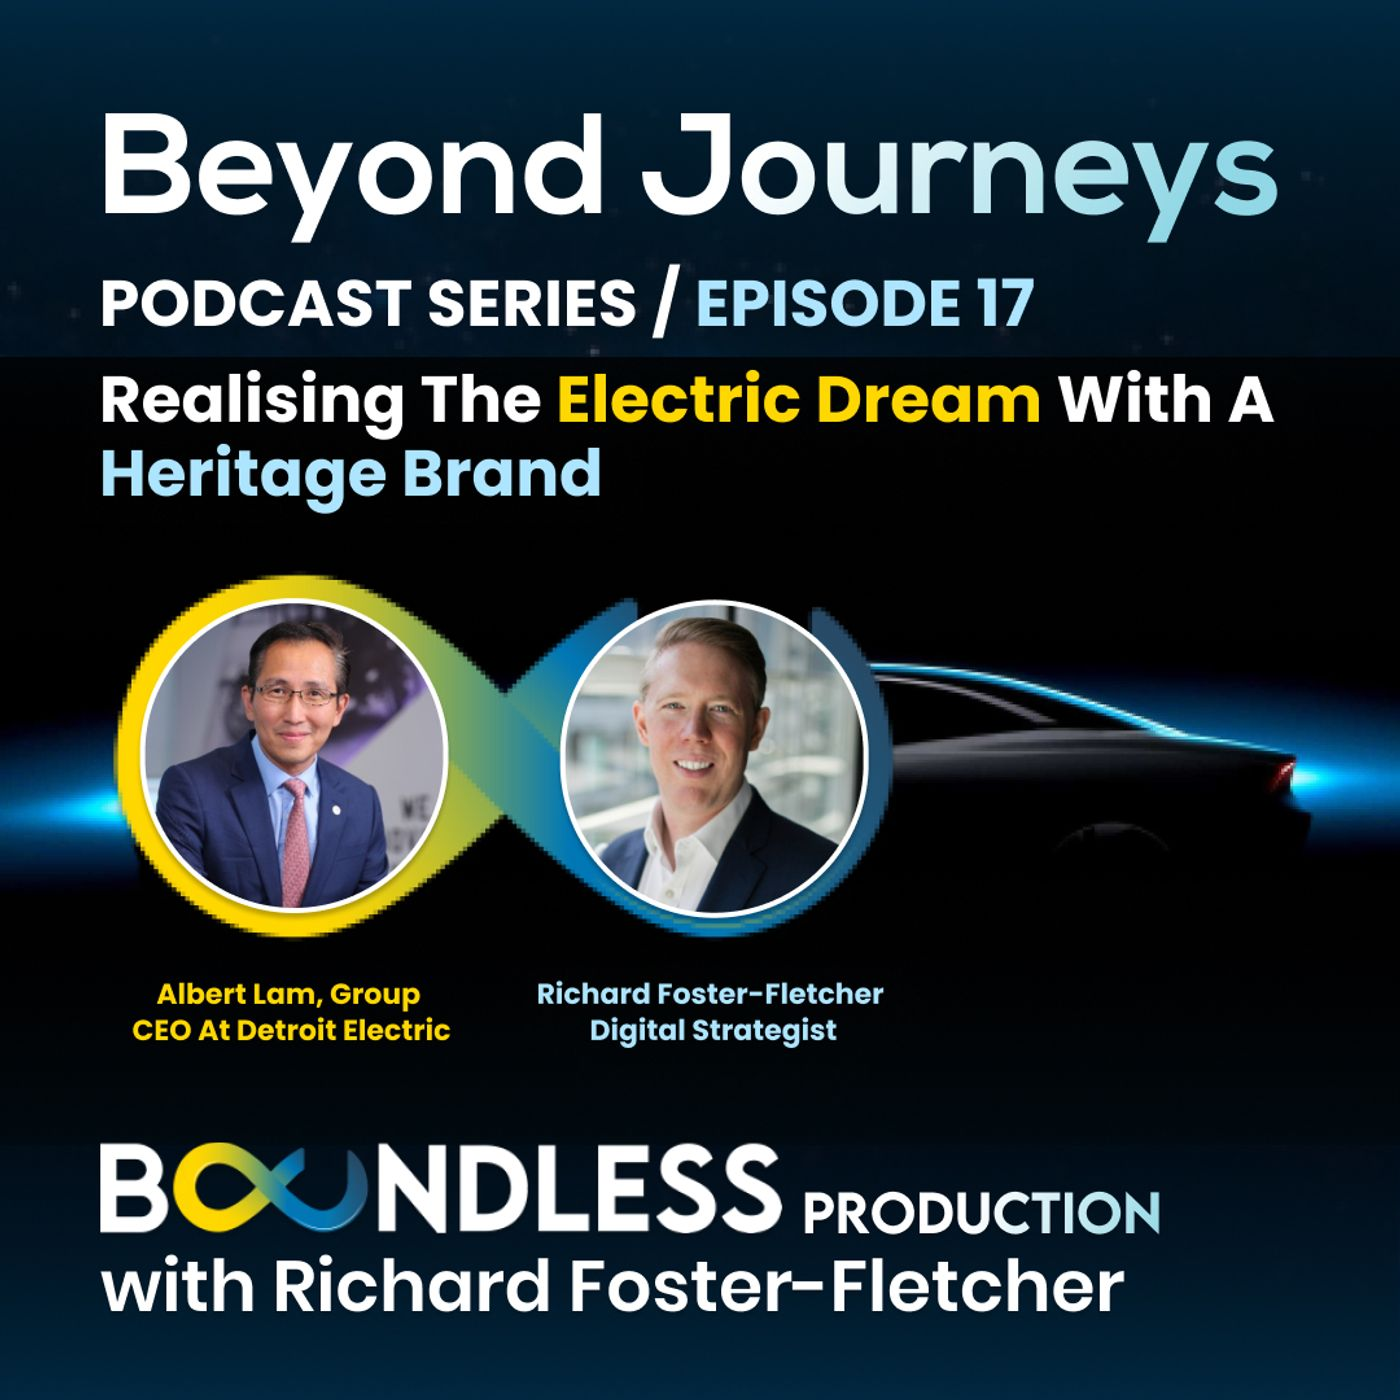 EP17 Beyond Journeys: Albert Lam, Group CEO at Detroit Electric - Realising the electric dream with a heritage brand